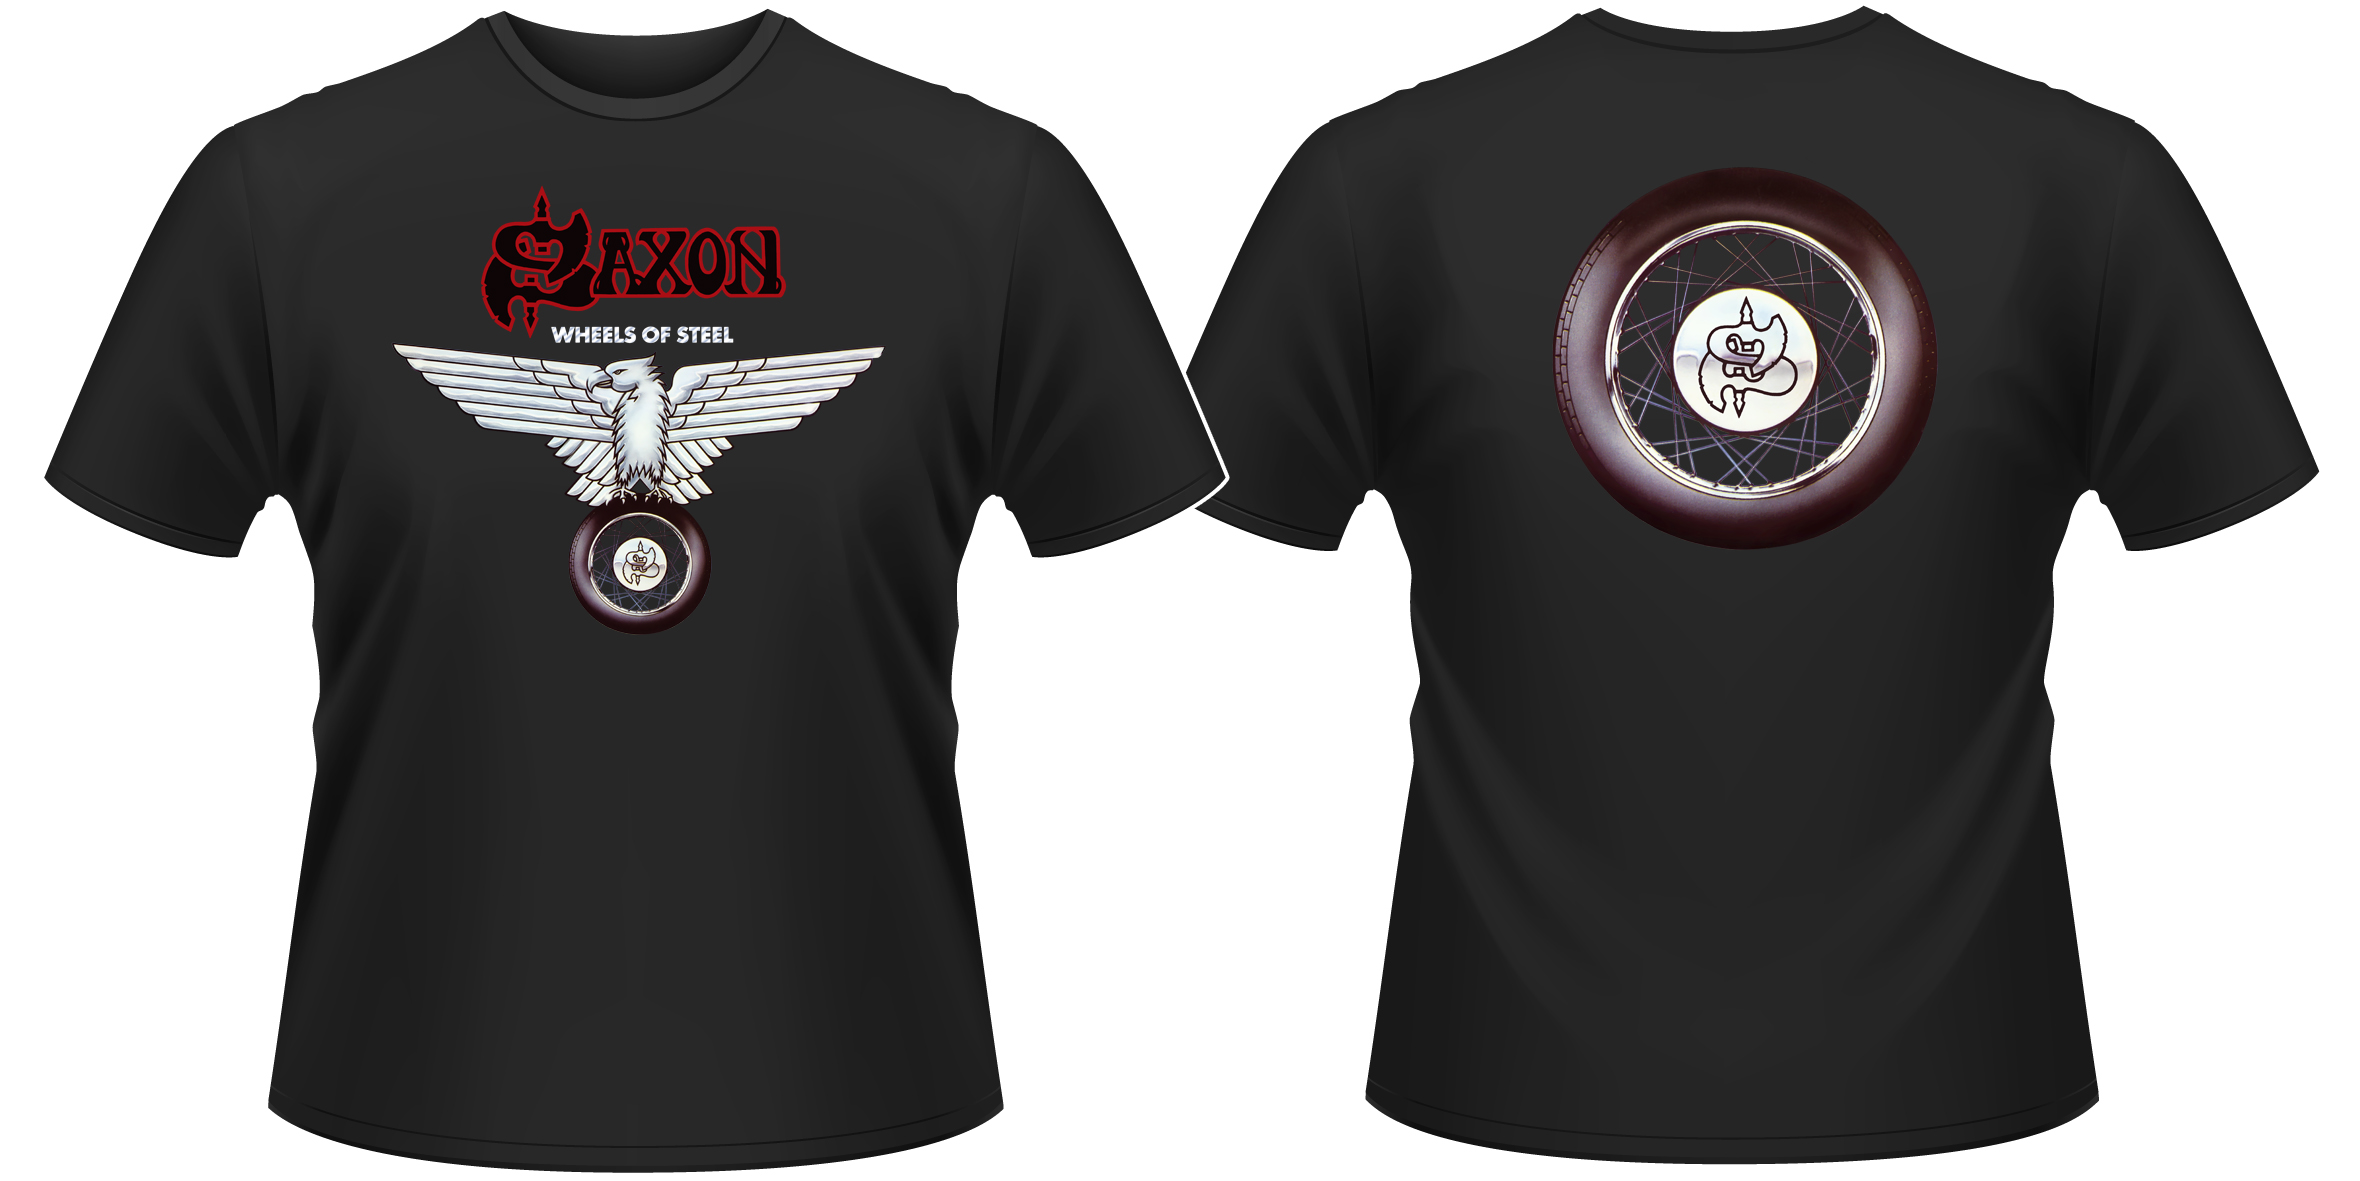 Saxon-Wheels-Of-Steel-T-Shirt-NEW-OFFICIAL